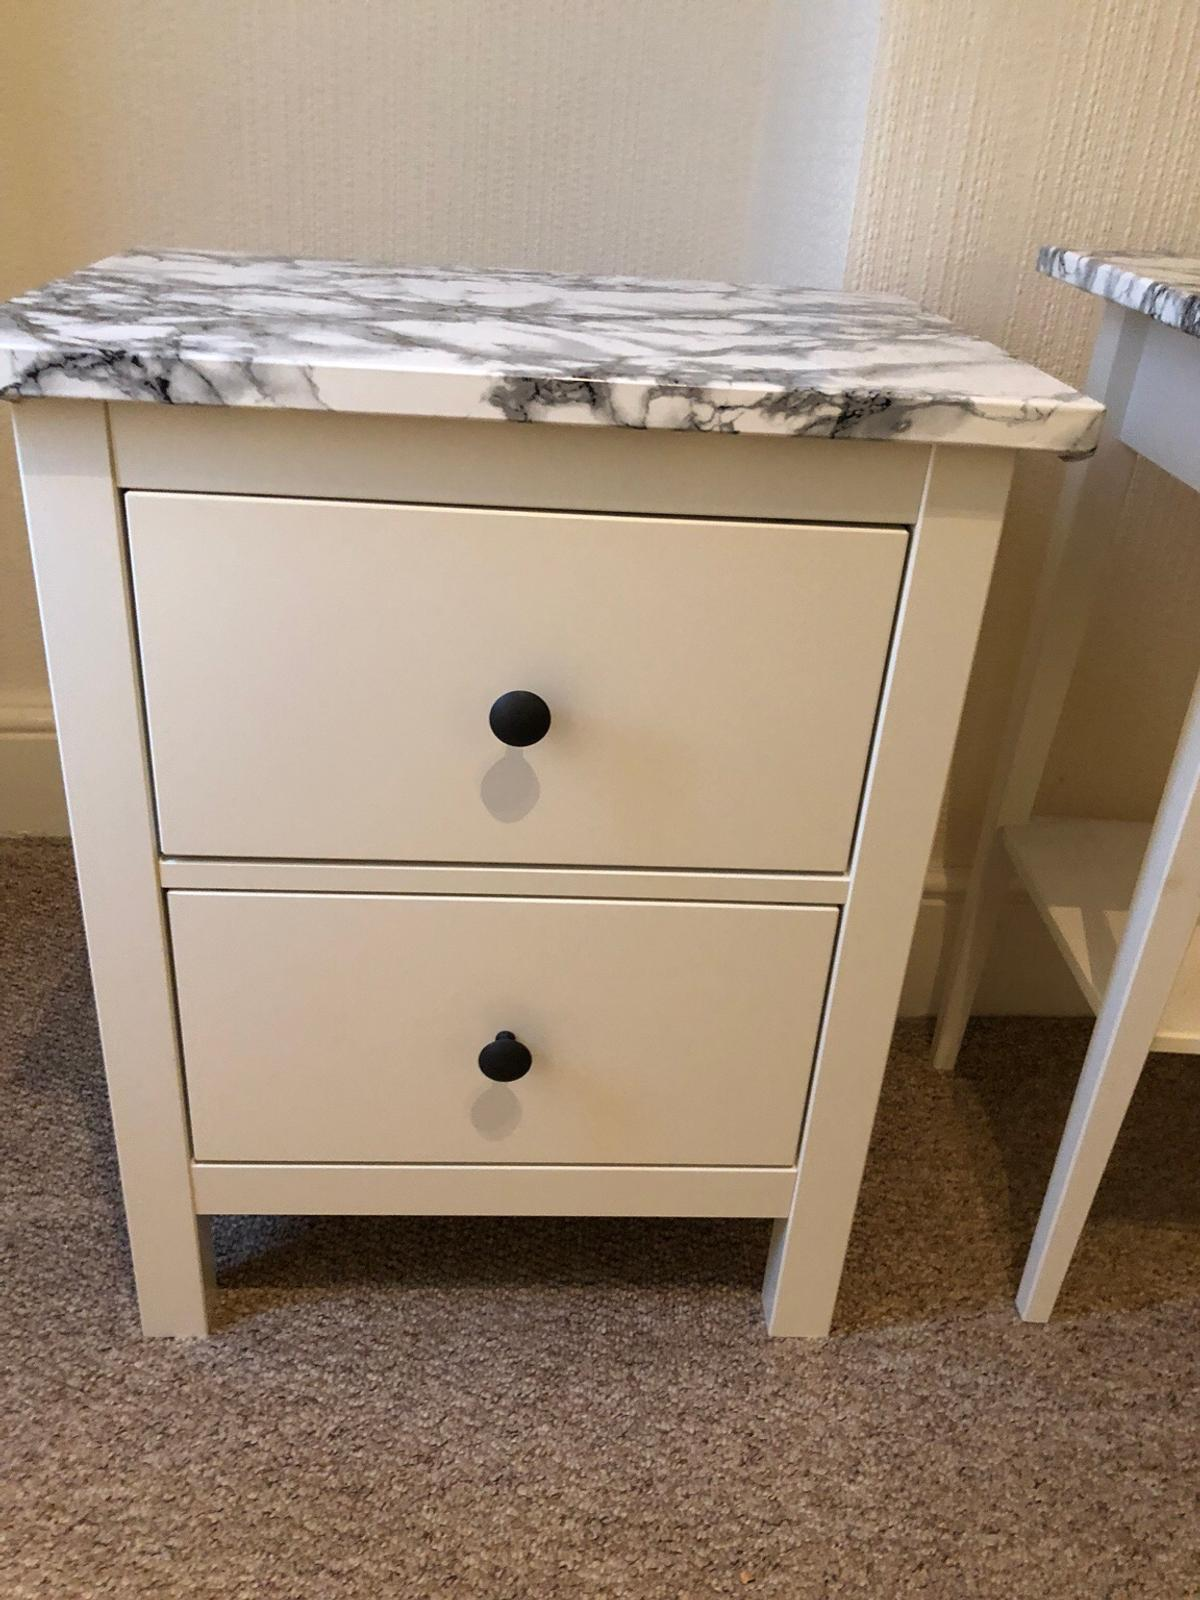 Hemnes Bedroom Storage Furniture In Mk11 Stratford Fur 60 00